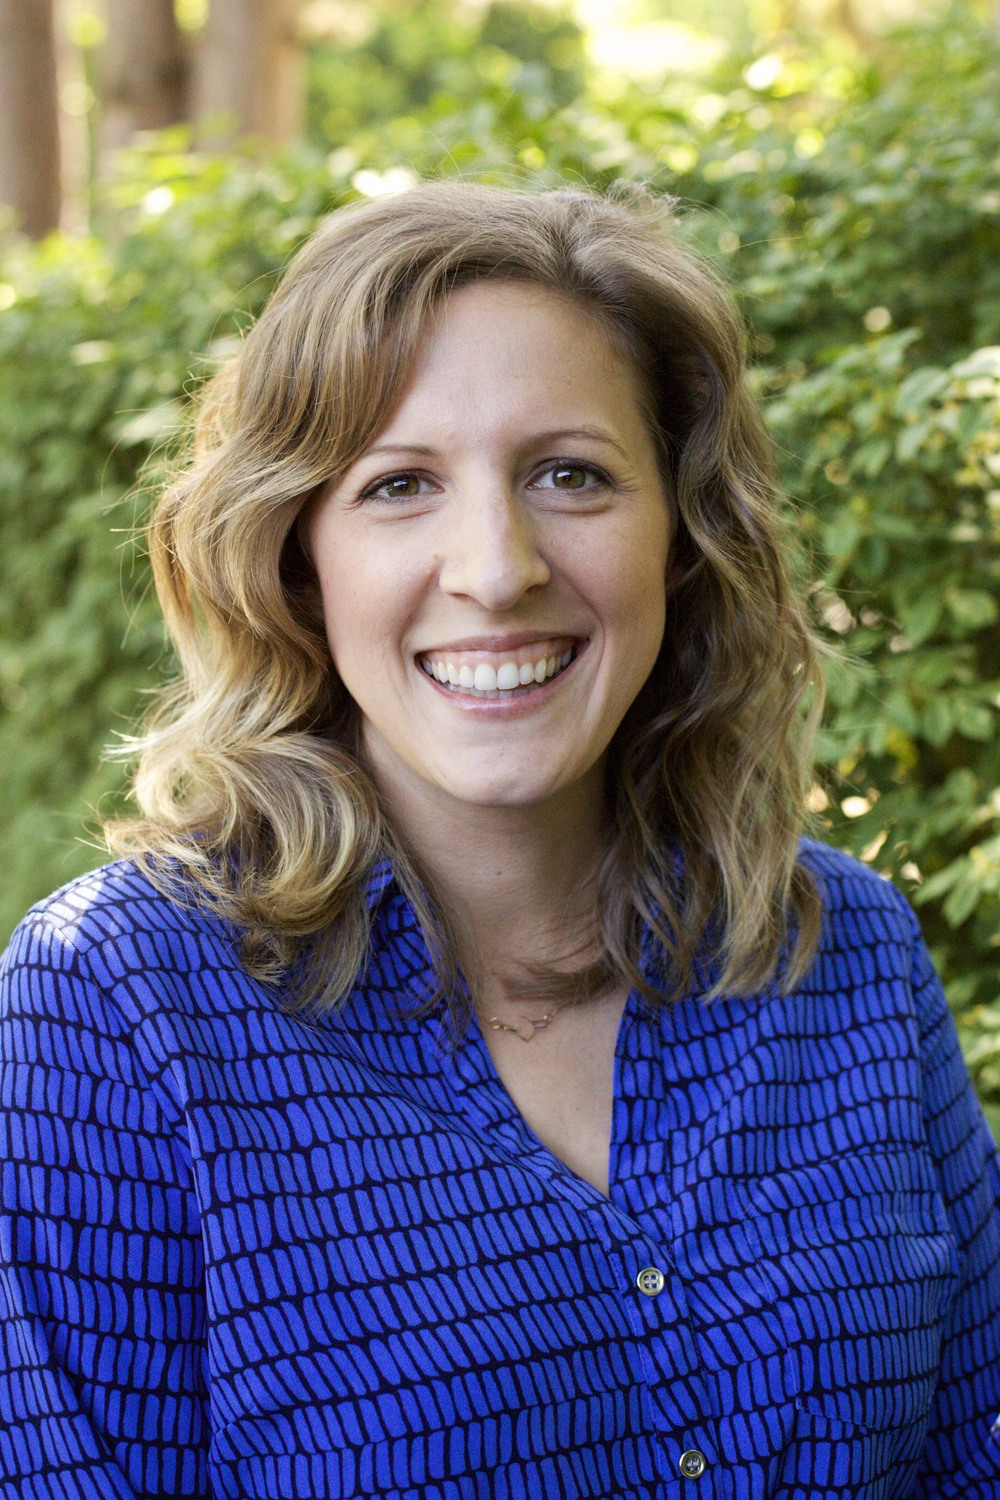 heather labouy, Psyd, Licensed psychologist    ∙  Adolescents & Adults (Ages 15 and up)  ∙  Individuals, Couples, & Families  ∙  Interpersonal Relationship Issues  ∙  Life Transitions  ∙  Family of Origin  ∙  Undergrad & Grad Students  ∙  LGBTQ, Issues of Sexuality & Gender  ∙  Issues of Cultural Identity  ∙  Depression & Anxiety  ∙  Recovery from Drug & Alcohol Addiction  ∙  HIV/AIDS